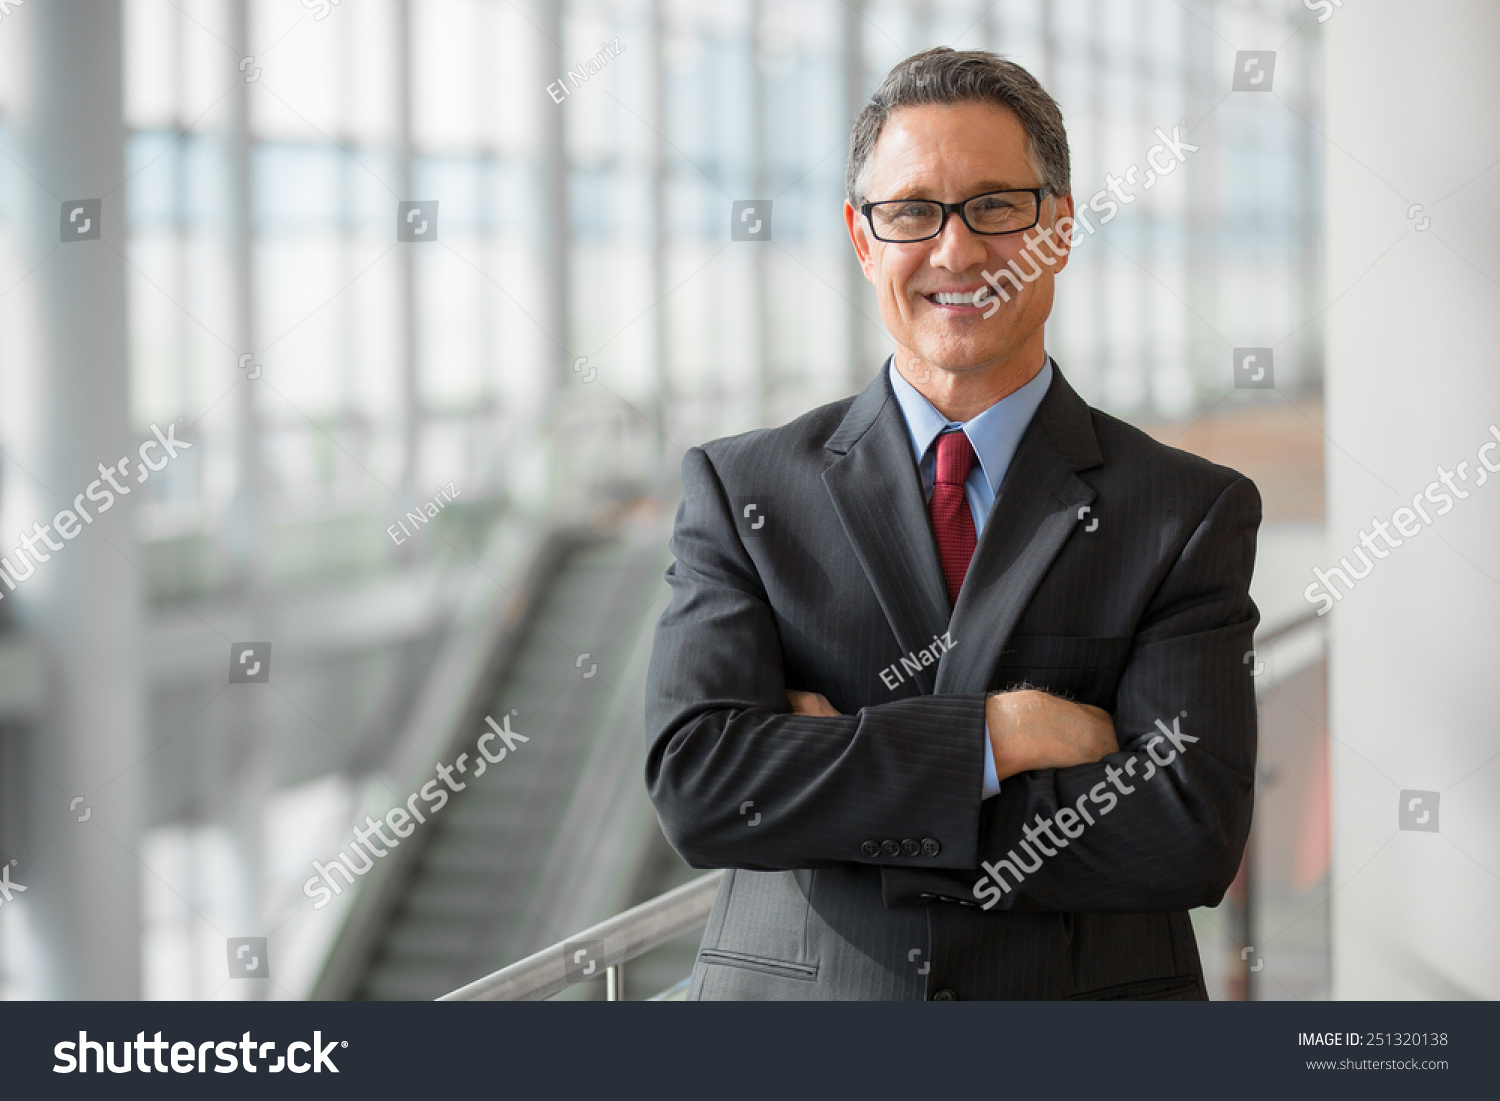 Portrait of a handsome CEO smiling  #251320138